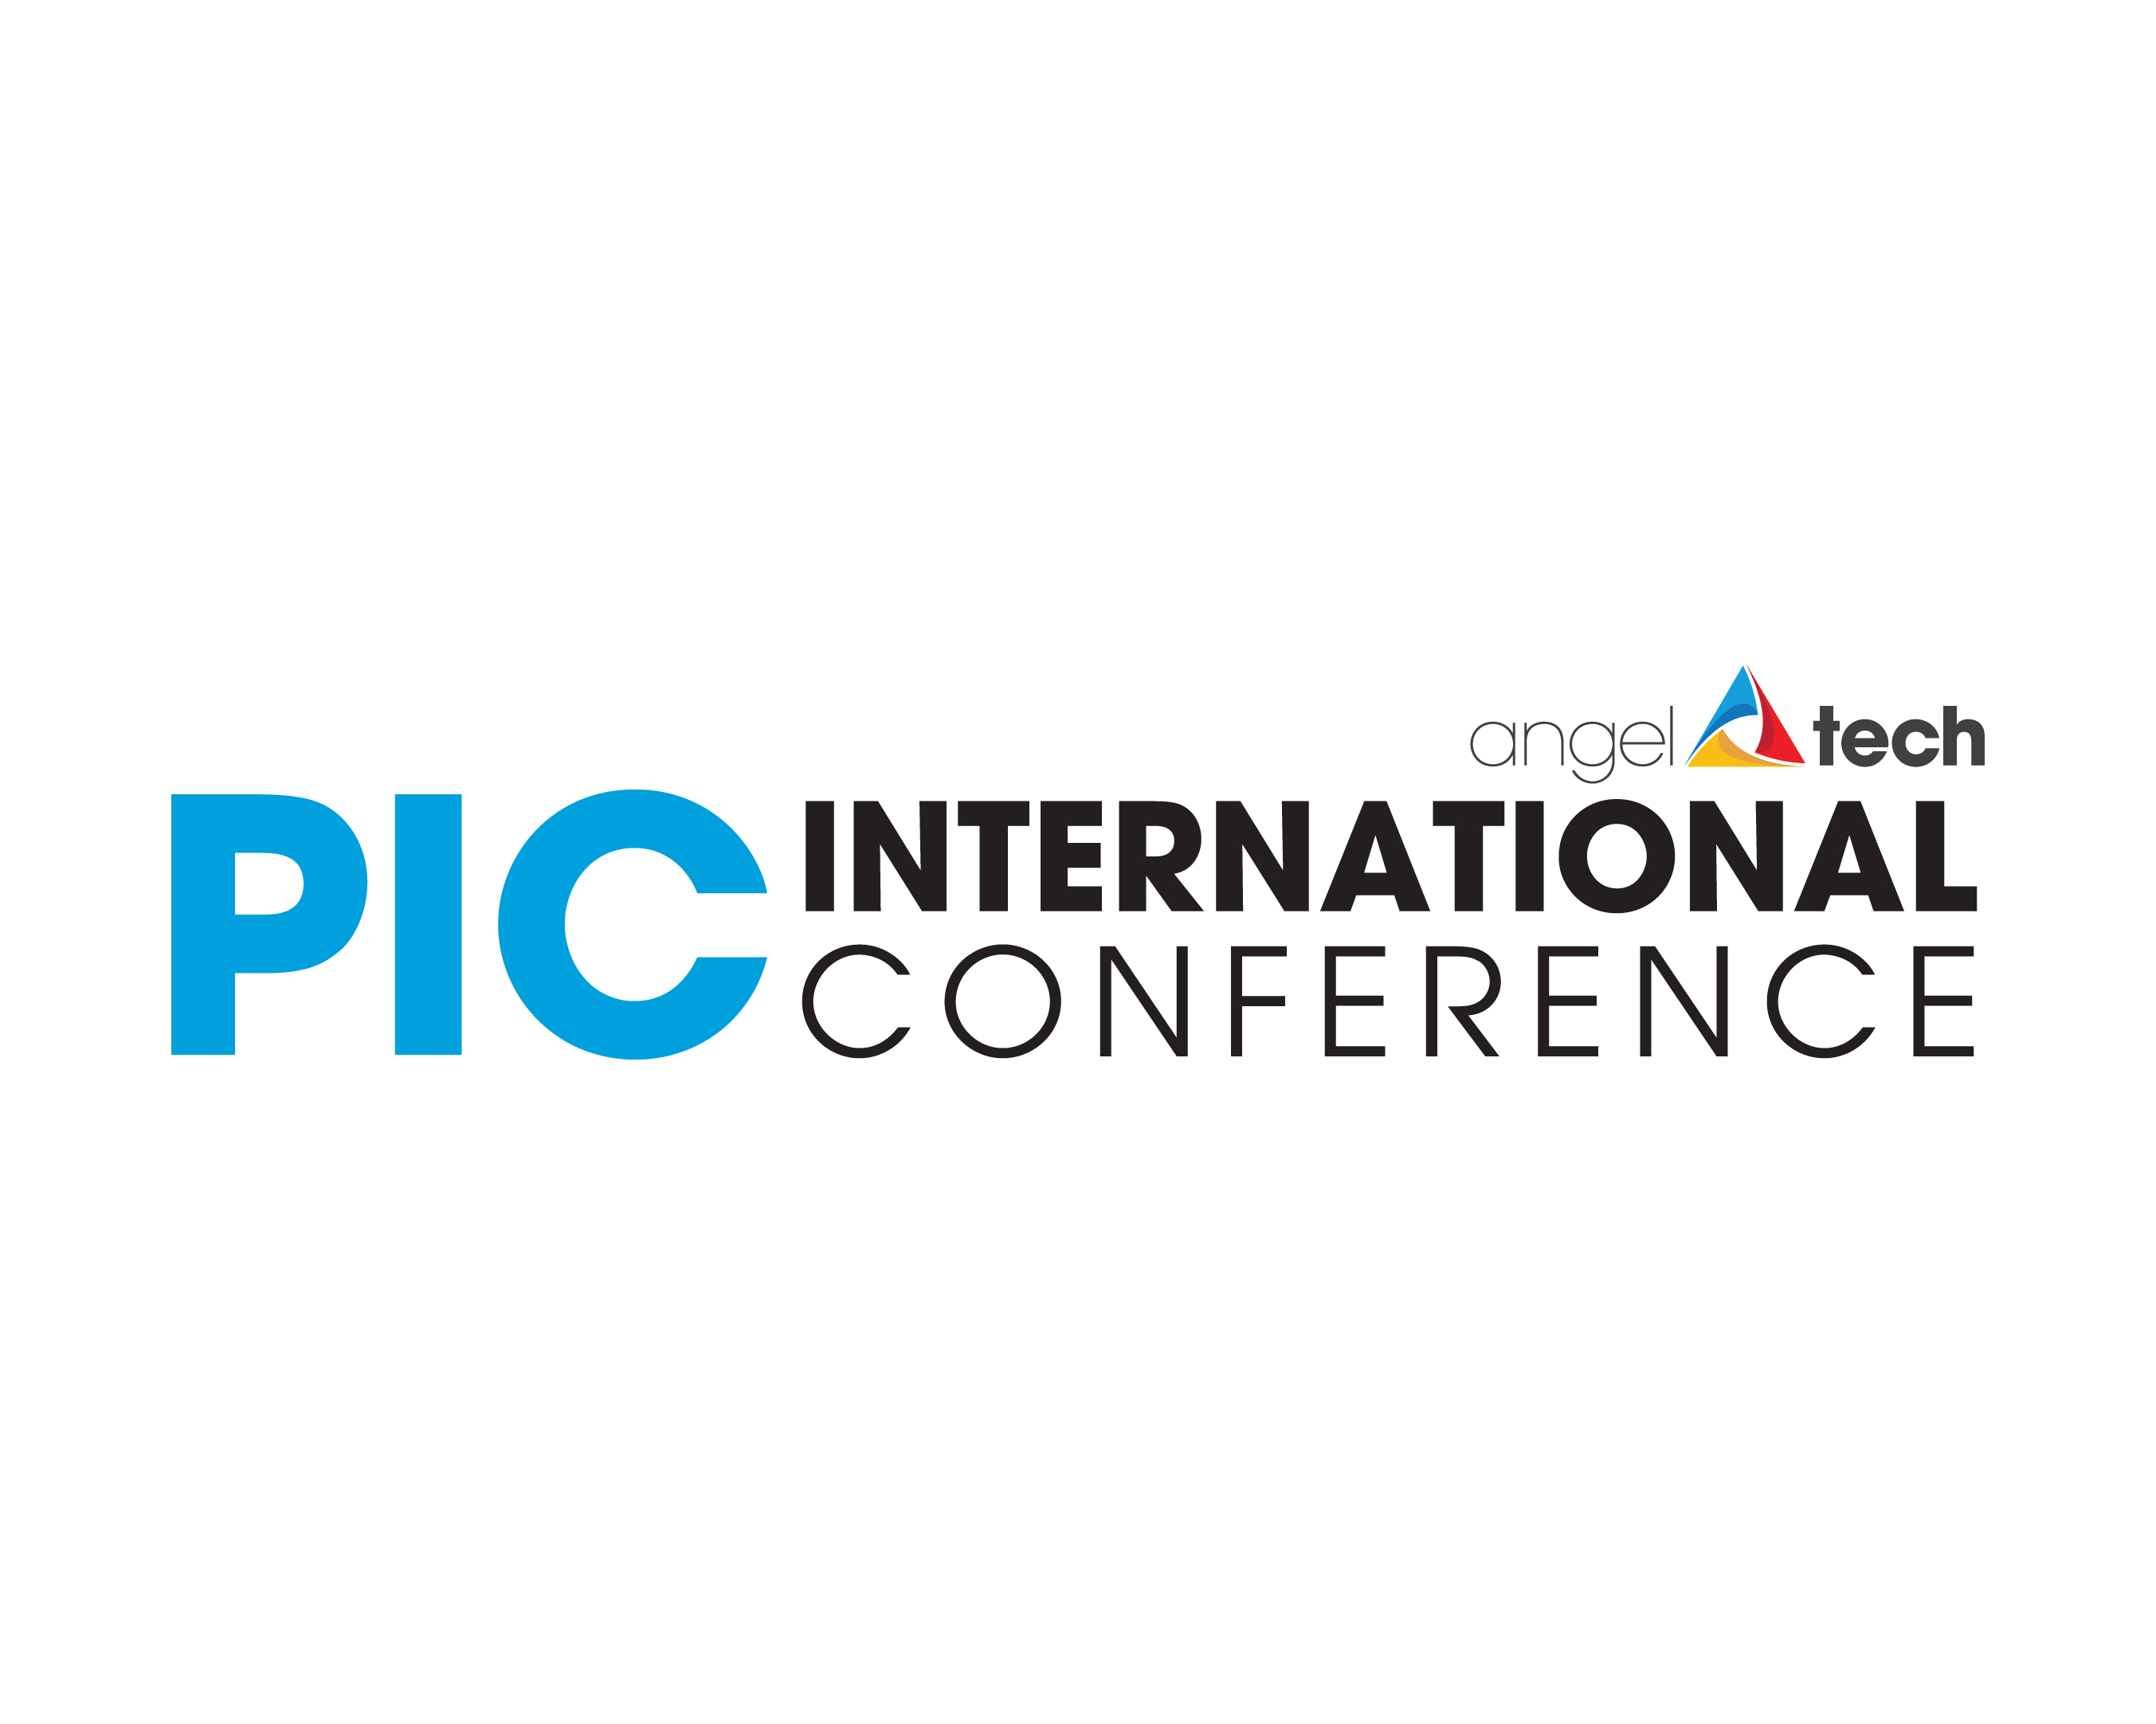 PIC International Conference